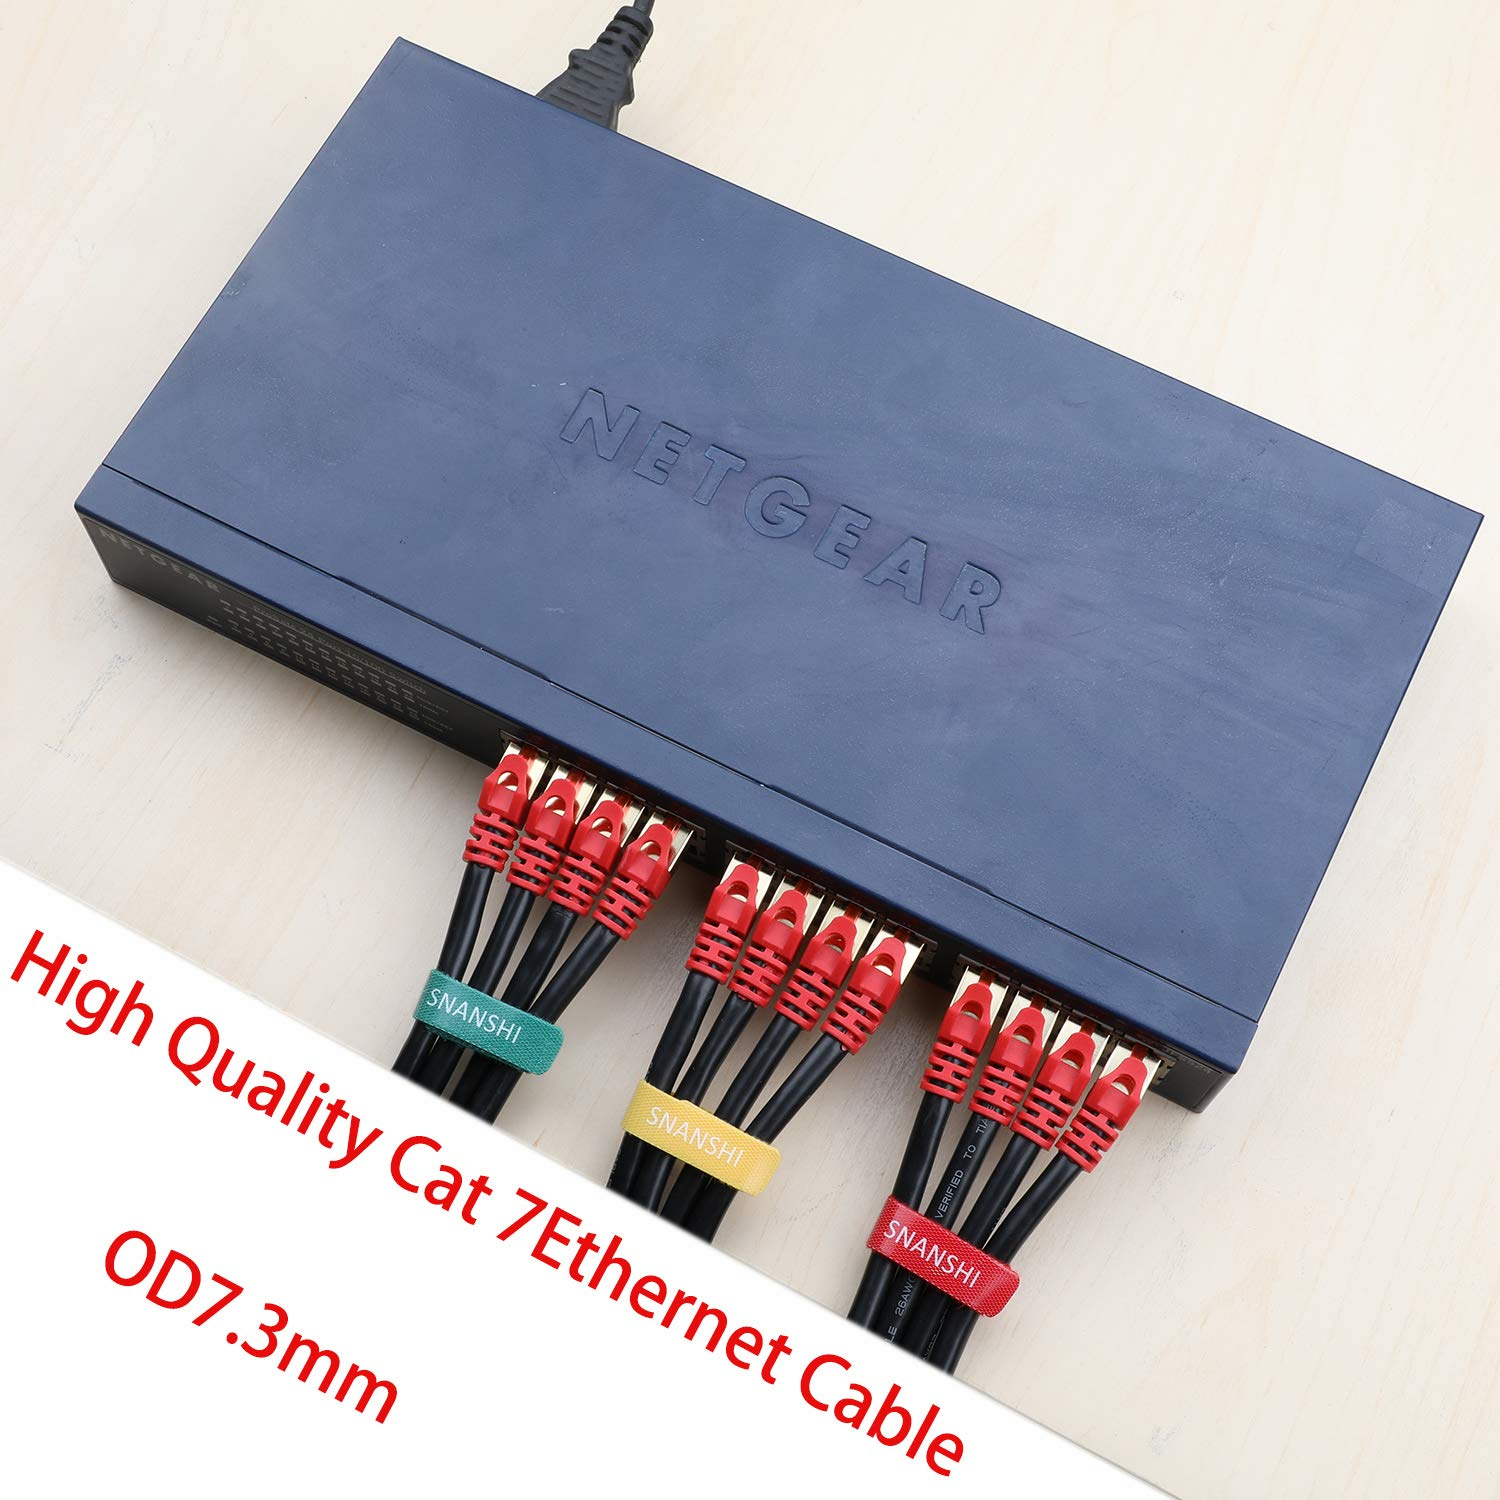 Cat 7 Outdoor Ethernet Cable 10m, SNANSHI Cat 7 Outdoor: Amazon.co ...